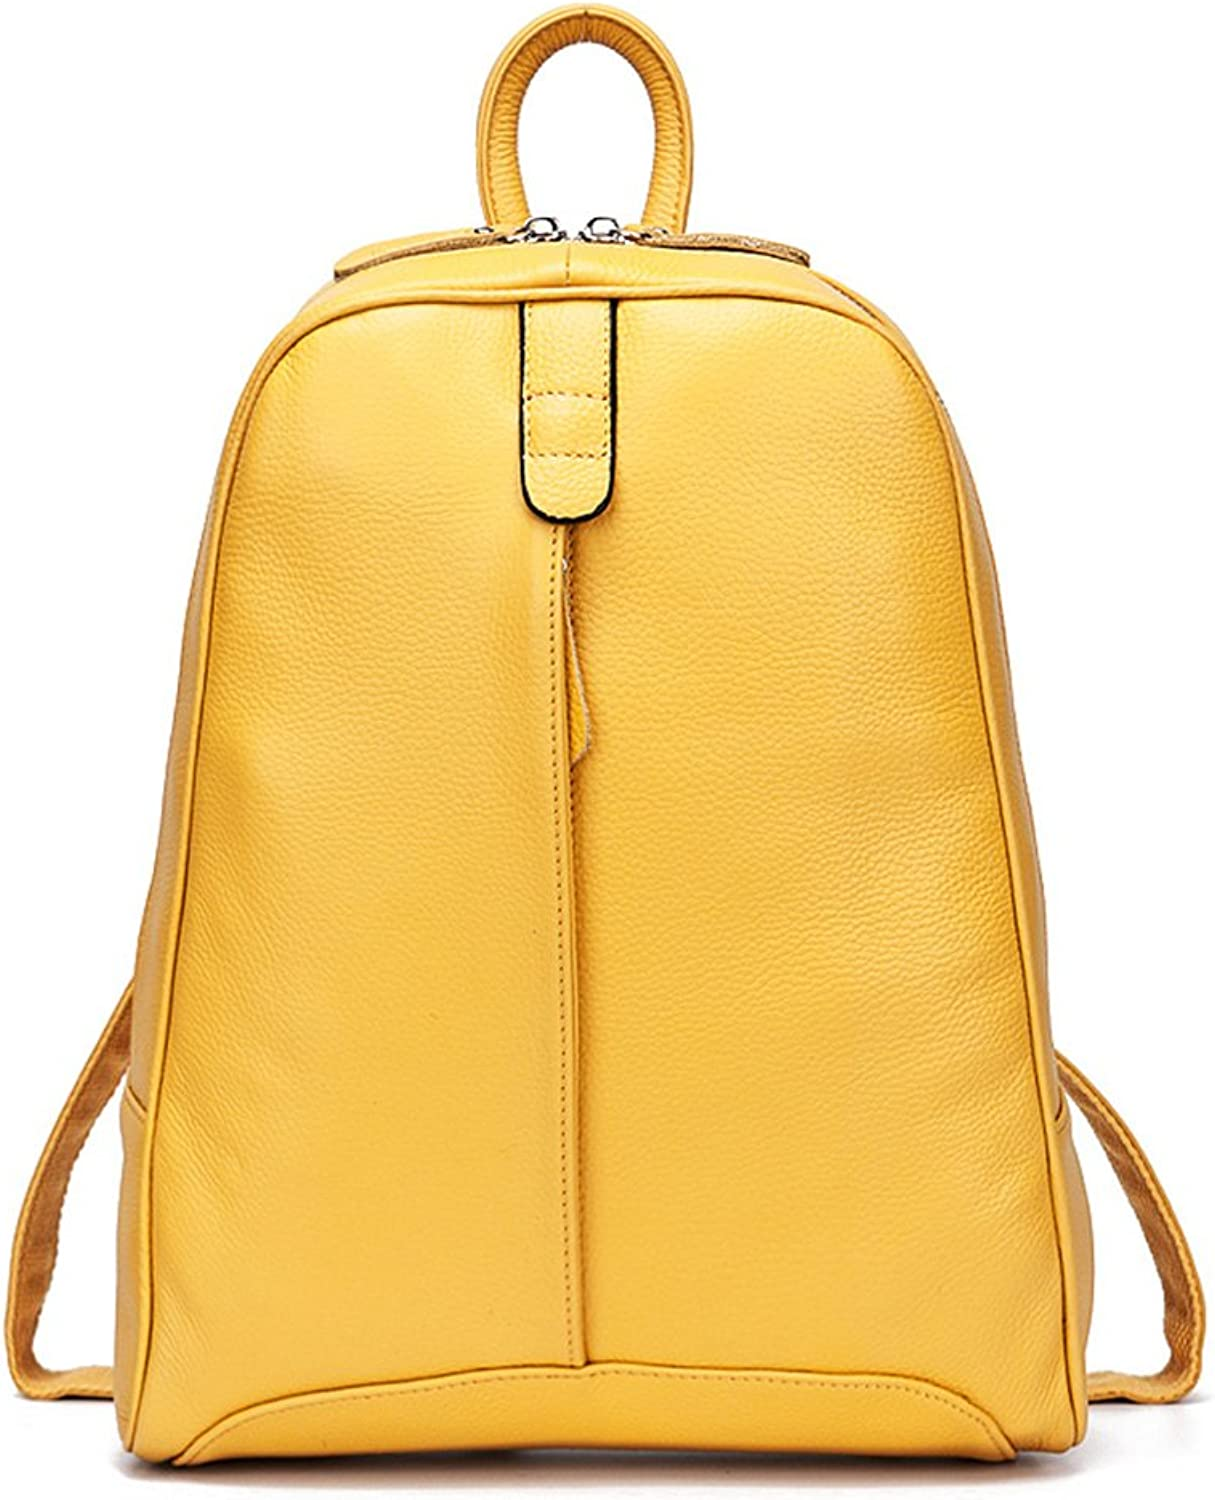 DHL Delivery Fashion Genuine Leather Backpack Women Laptop Casual Knapsack Travel Girls